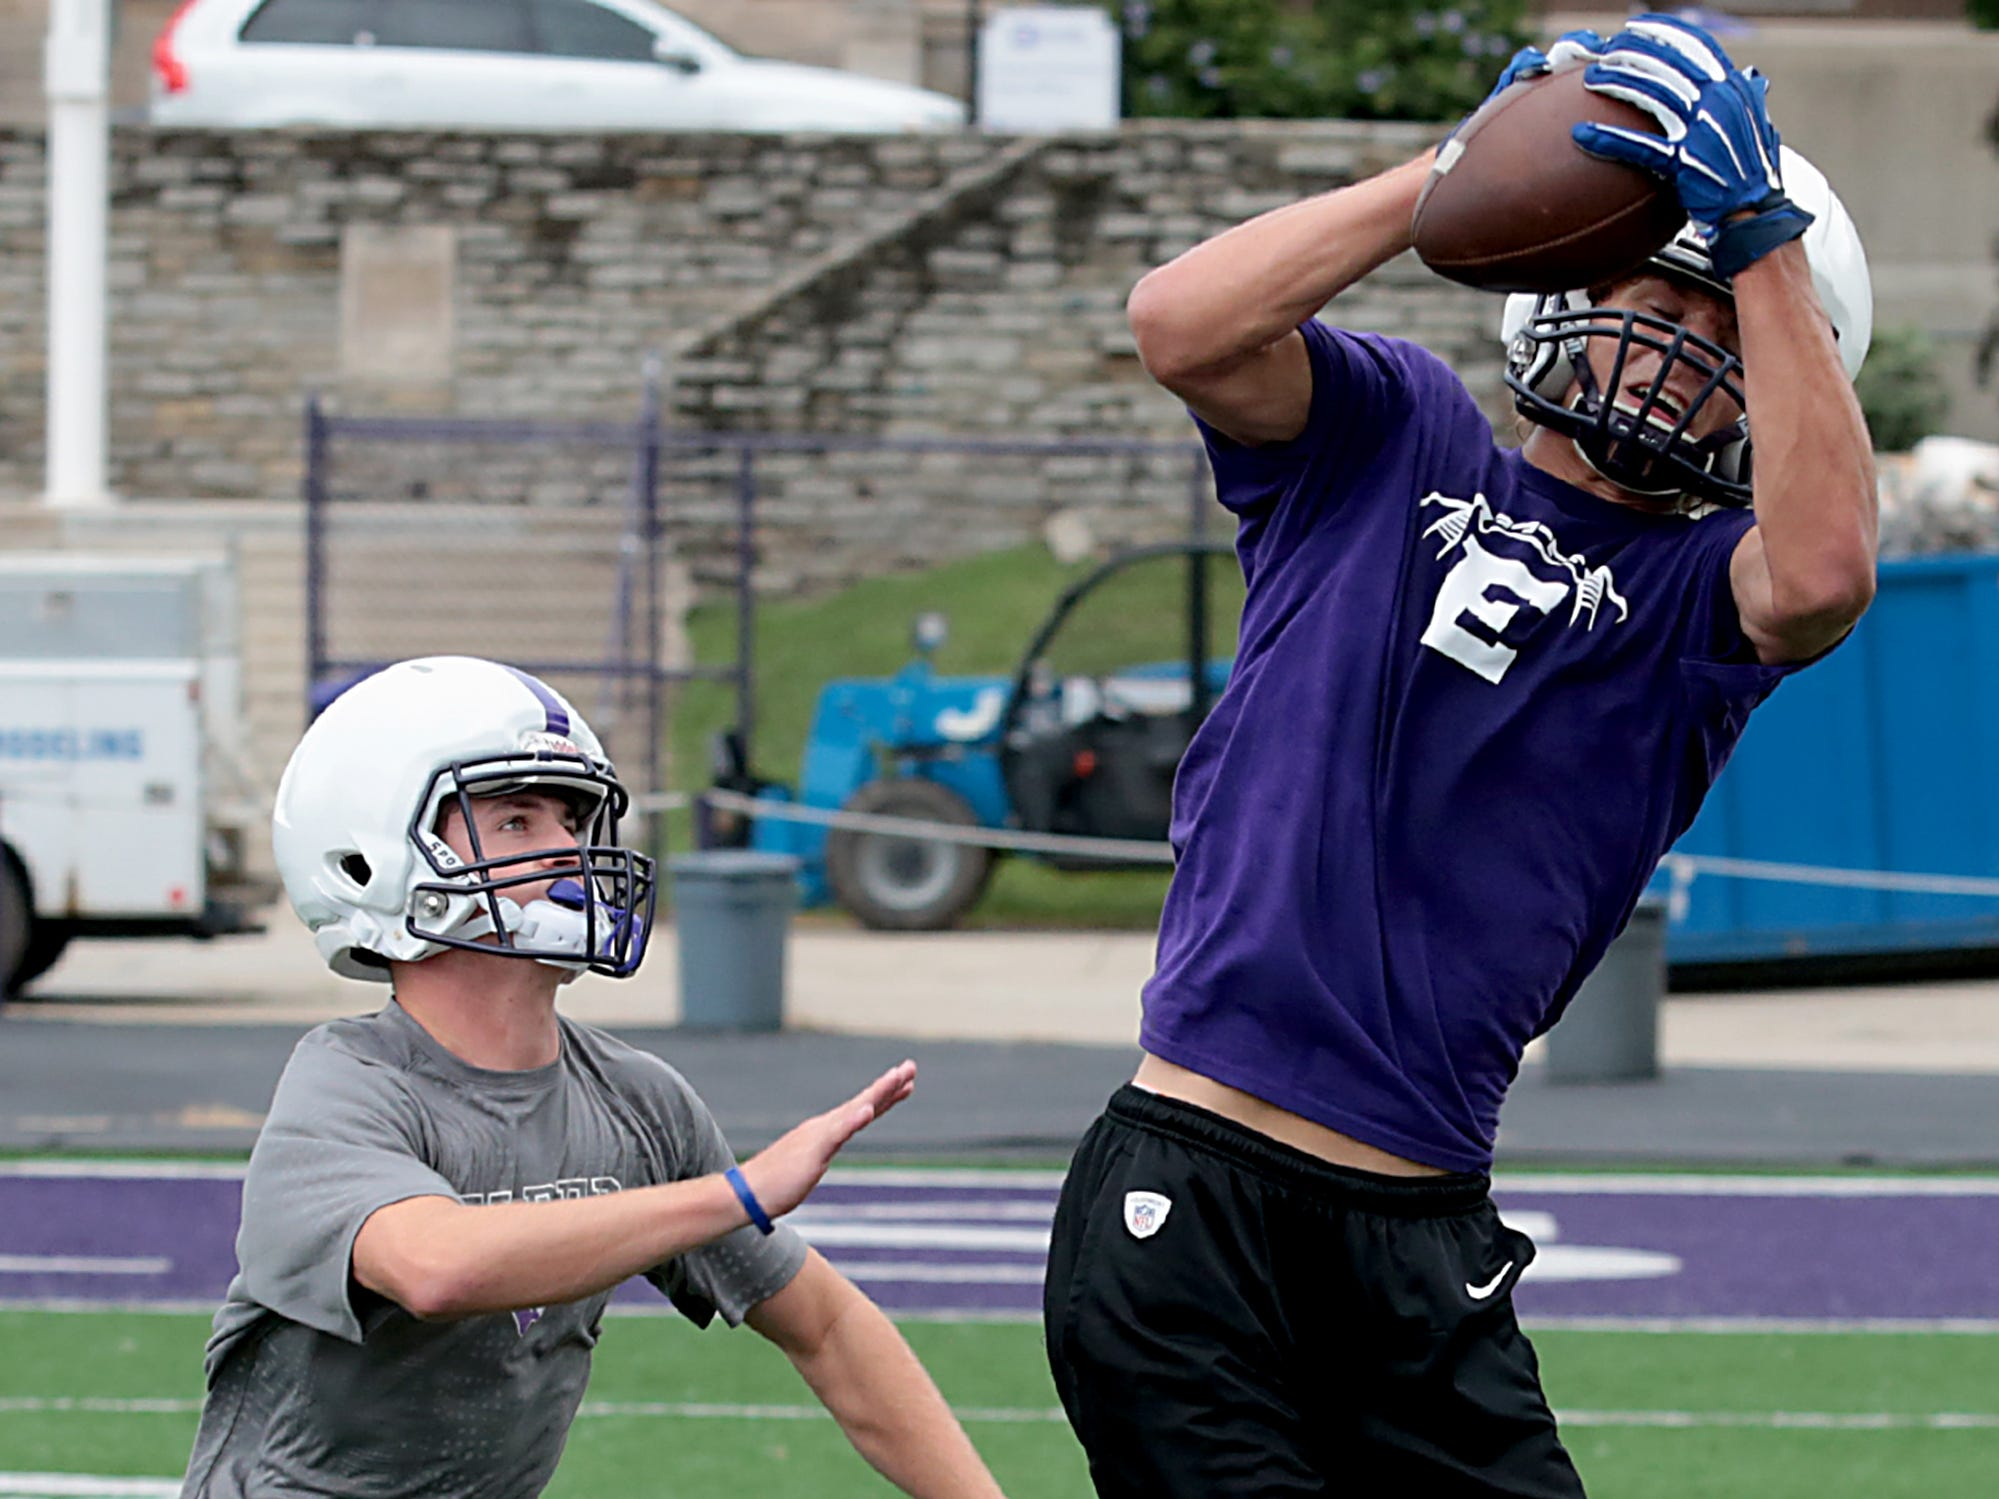 Elder defensive back Ben Deters watches tight end Joe Royer pull down a pass during practice Tuesday, July 31, 2018.